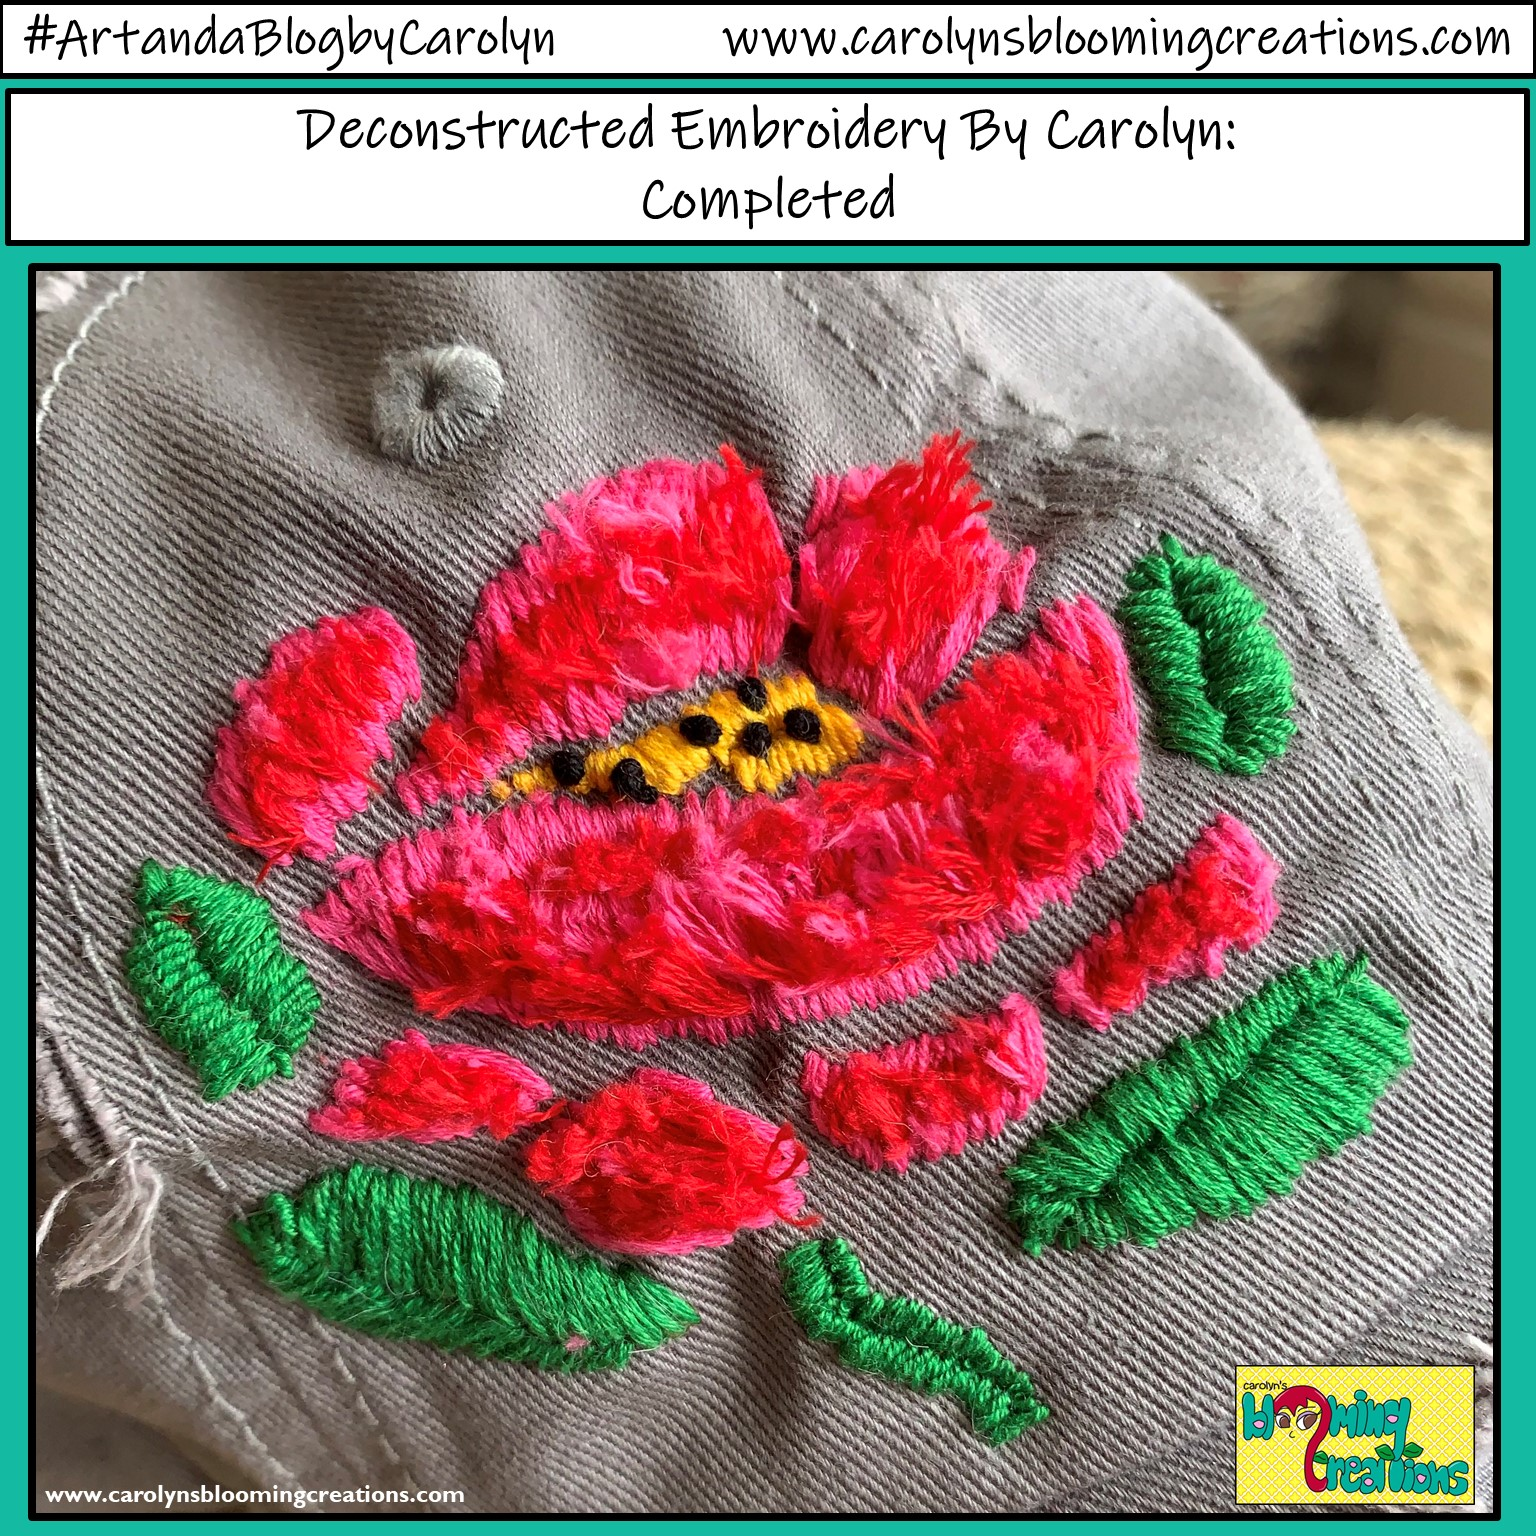 Deconstructed Embroidery by Carolyn